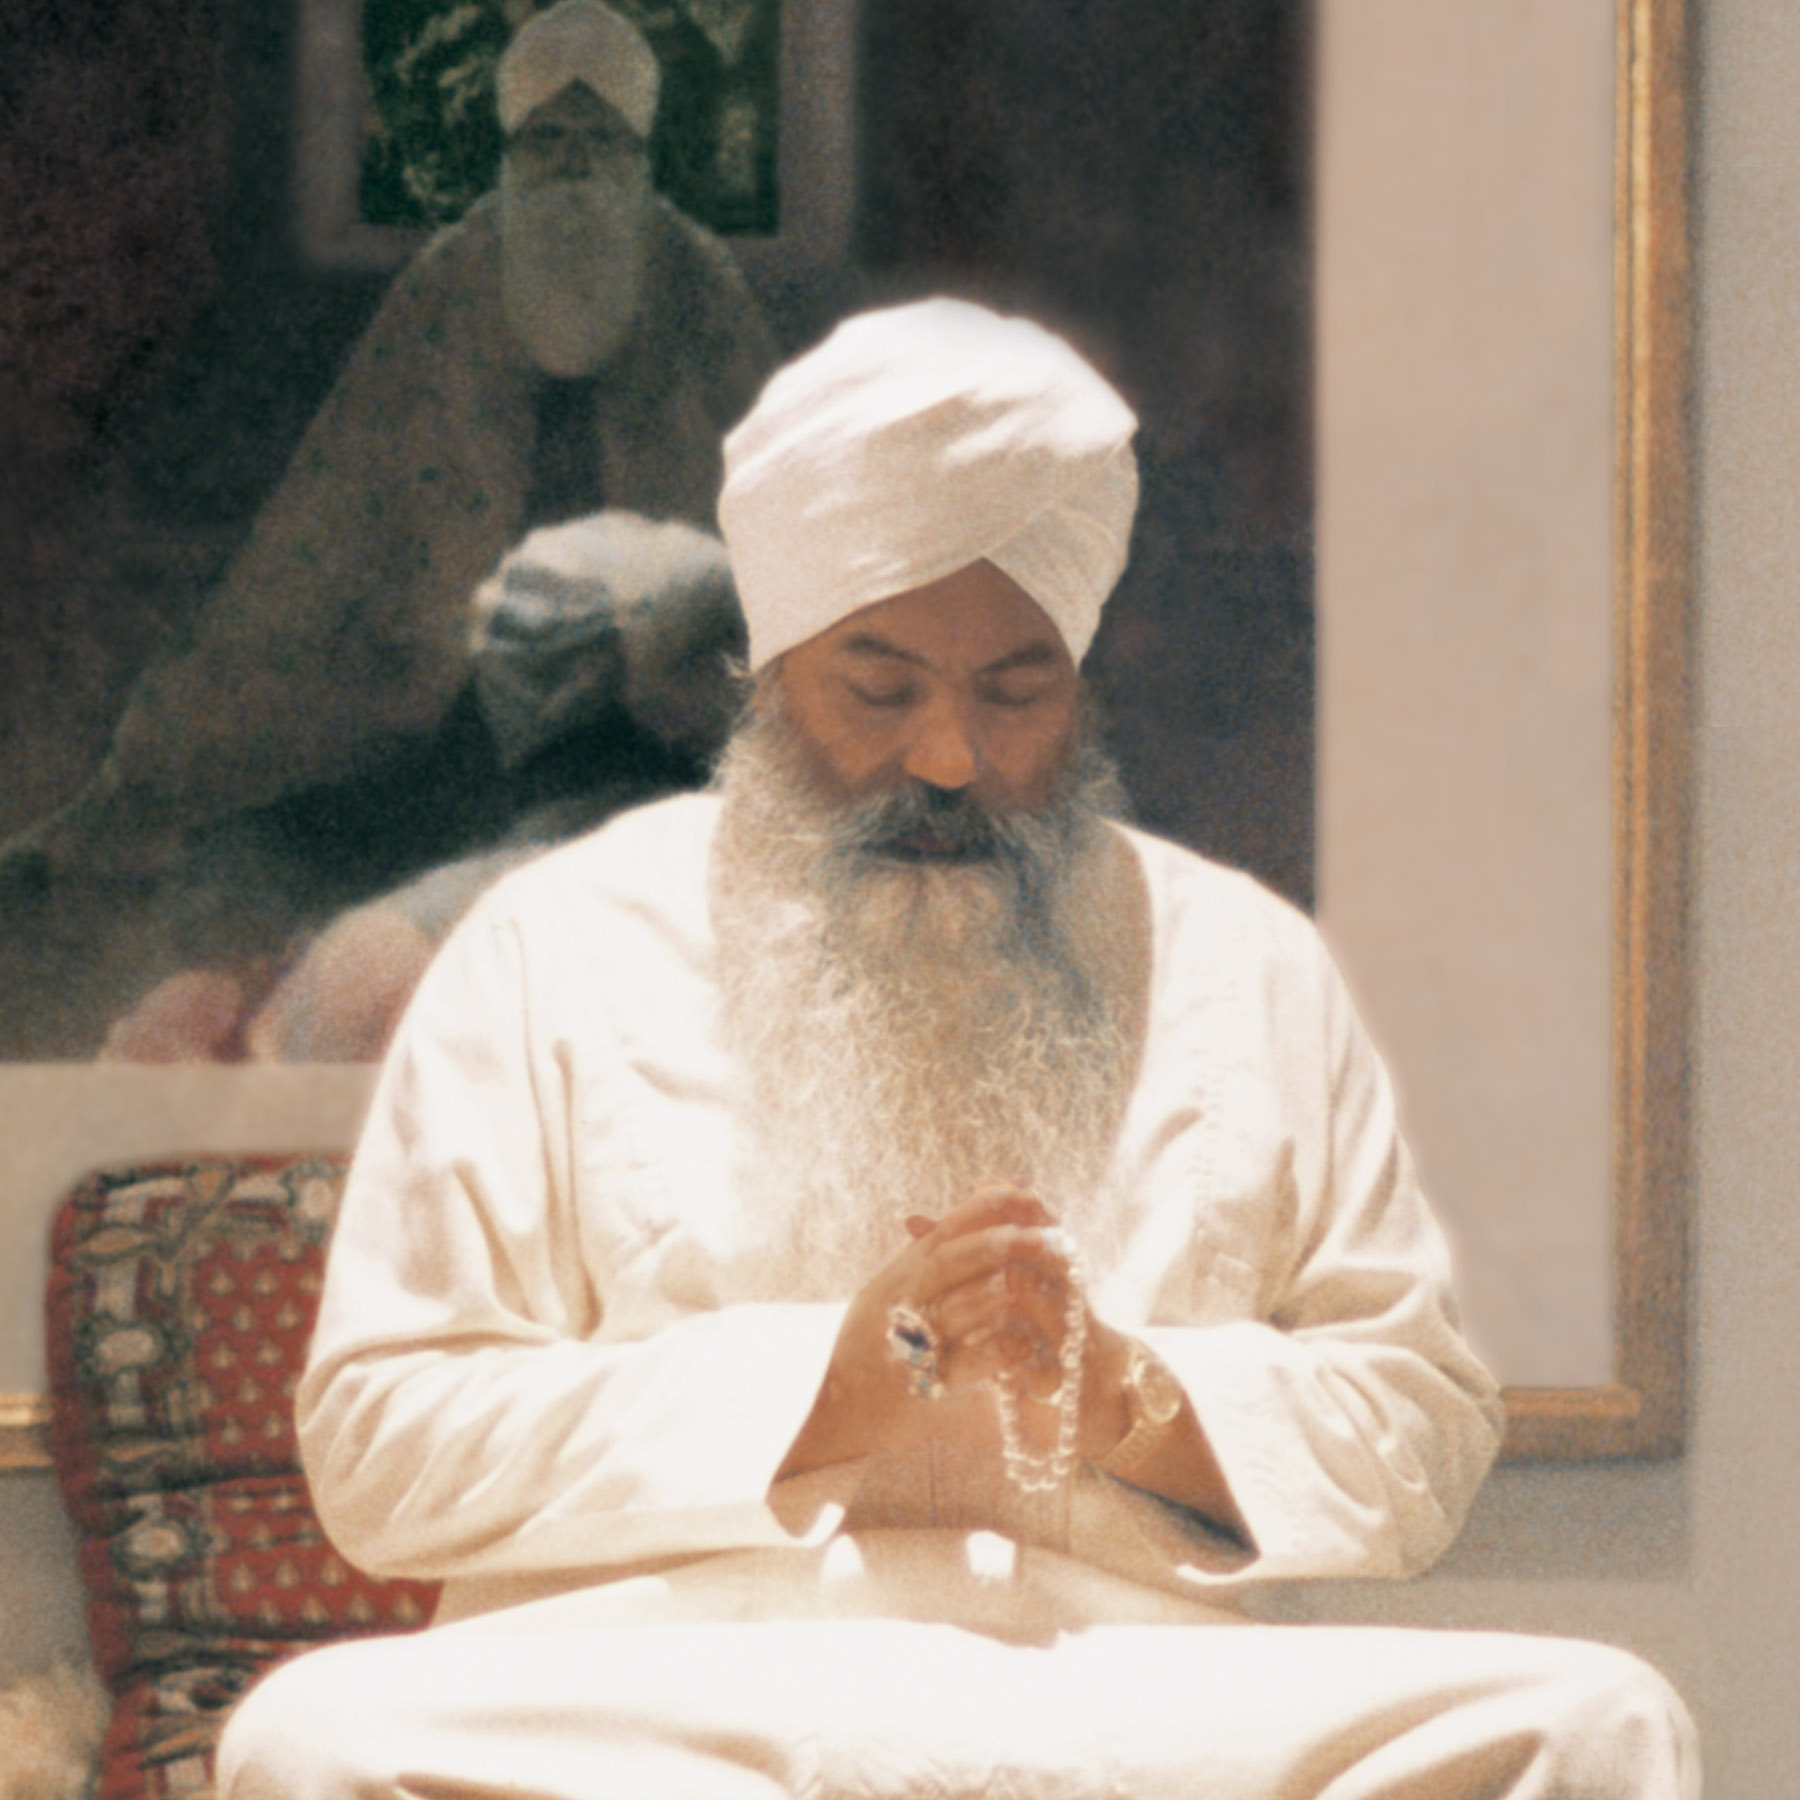 Yogi Bhajan: Teacher & Founder   Yogi Bhajan was a spiritual teacher of great caliber. He was born on the 26th of August, 1929, in the north of India. He left his body on October 6, 2004, in Espanola, USA. He studied a variety of yogic and spiritual teachings from an early age, becoming a master of Kundalini Yoga at the age of sixteen. Living the life of a householder (he was married and had three children) he decided in 1968 to go to the west and teach. From this beginning a worldwide organization (3HO Foundation, the Healthy, Happy, Holy Organization) has grown, a non-profit organization dedicated to spreading the teachings of Kundalini Yoga. Inspired by Yogi Bhajan, a number of 3HO members have embraced the Sikh religion, many aspects of which are relevant to present times including the equality of men and women of all religions, races and cultures. Yogi Bhajan put his whole heart in teaching yogic techniques, formerly shrouded by secrecy, to help humanity to find its natural joy, which he considered its birthright. He taught a large number of yoga sets and gave nutritional advice to maintain good health. Since his first conference in Los Angeles in 1969 he has offered the technology of Kundalini Yoga as a way to deeply understand and experience what it means to be a human being.